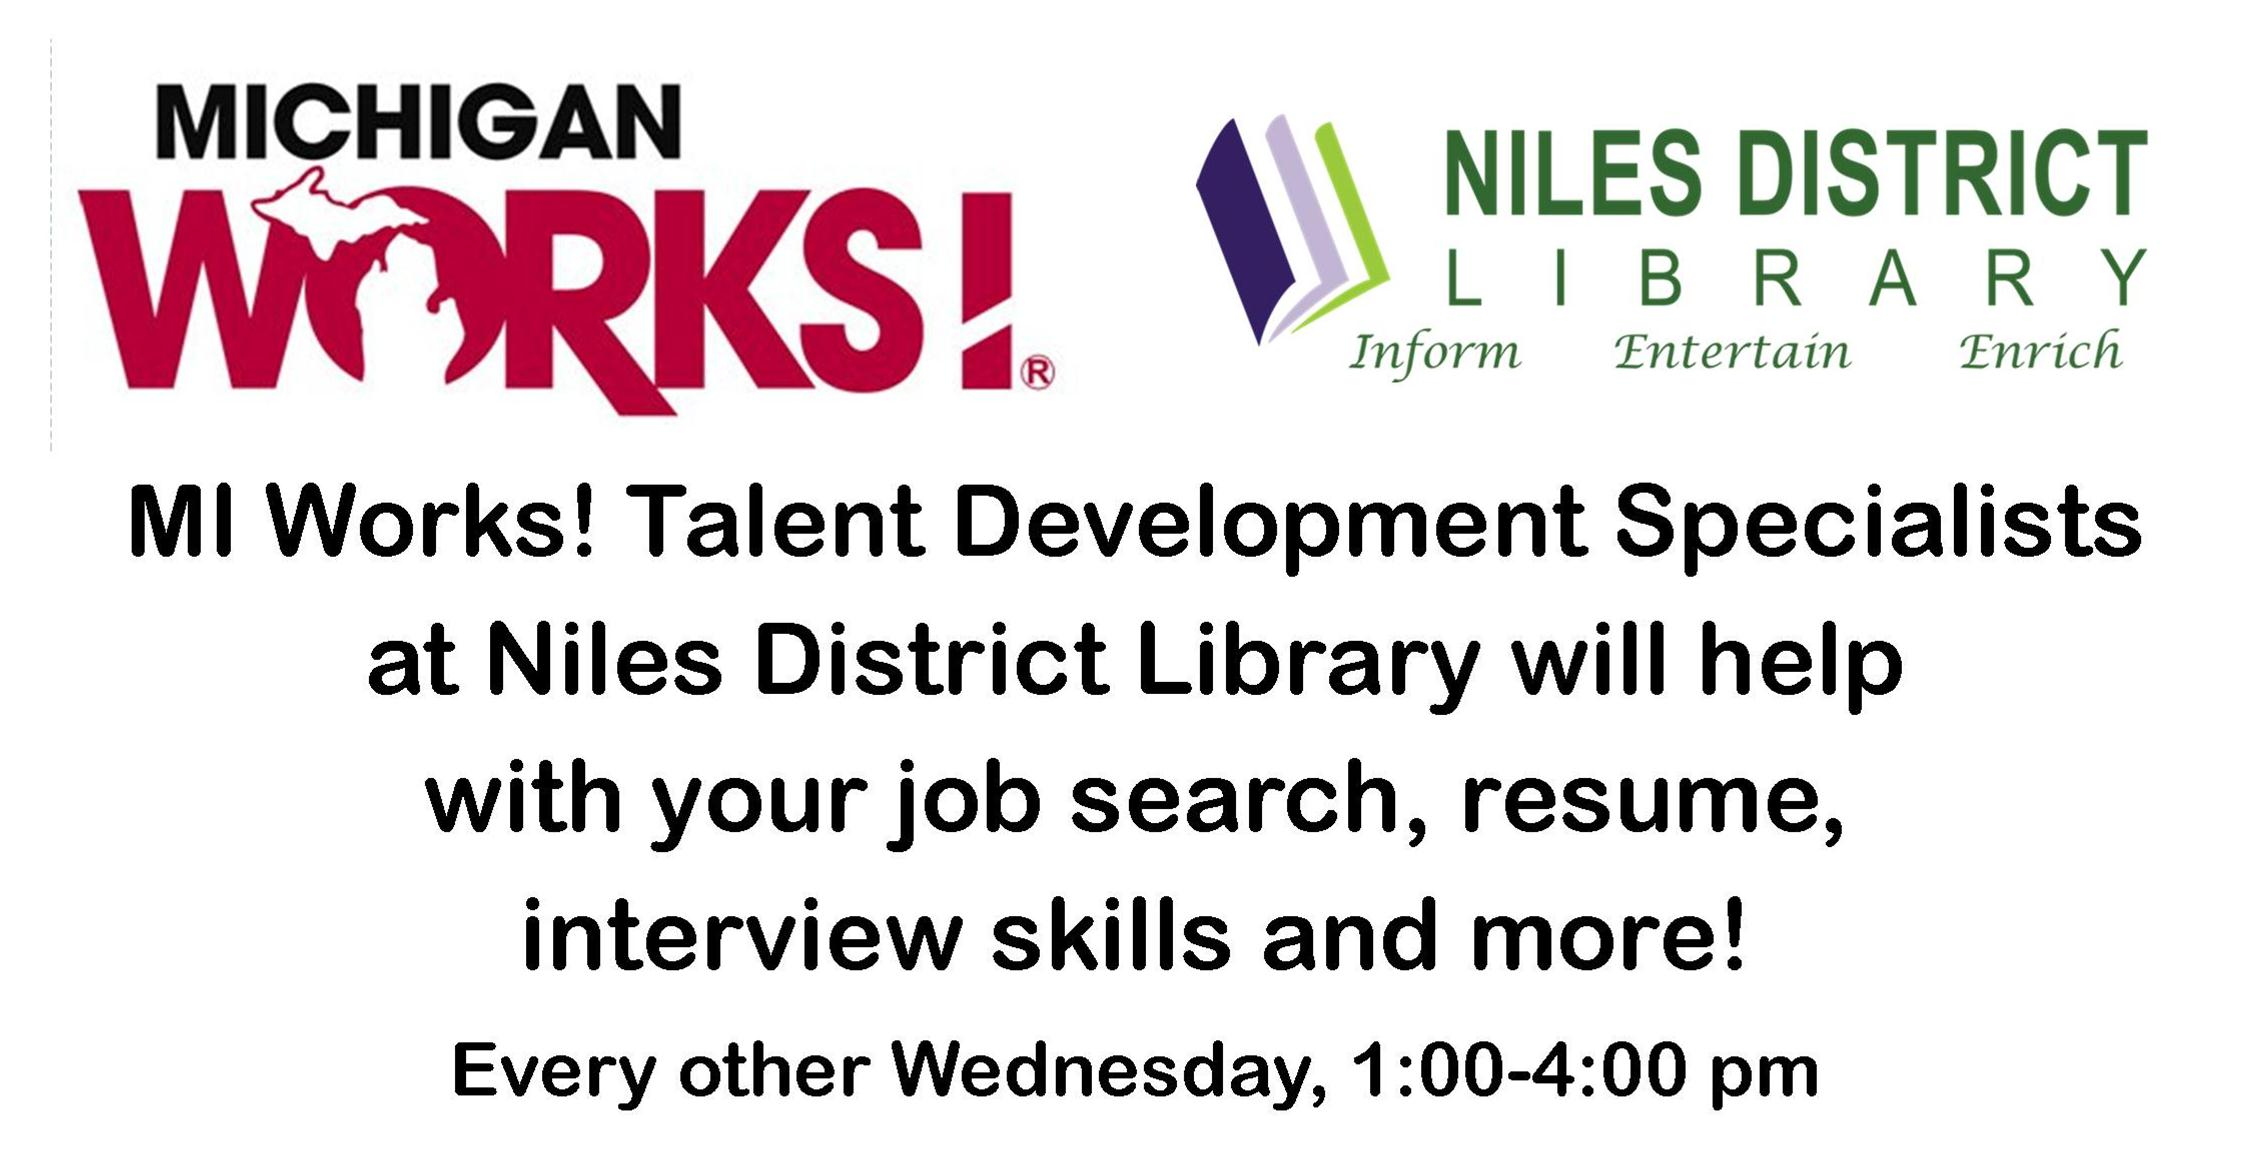 michigan works resume help job seekers michigan works association michigan works talent development specialists michiganworksorg